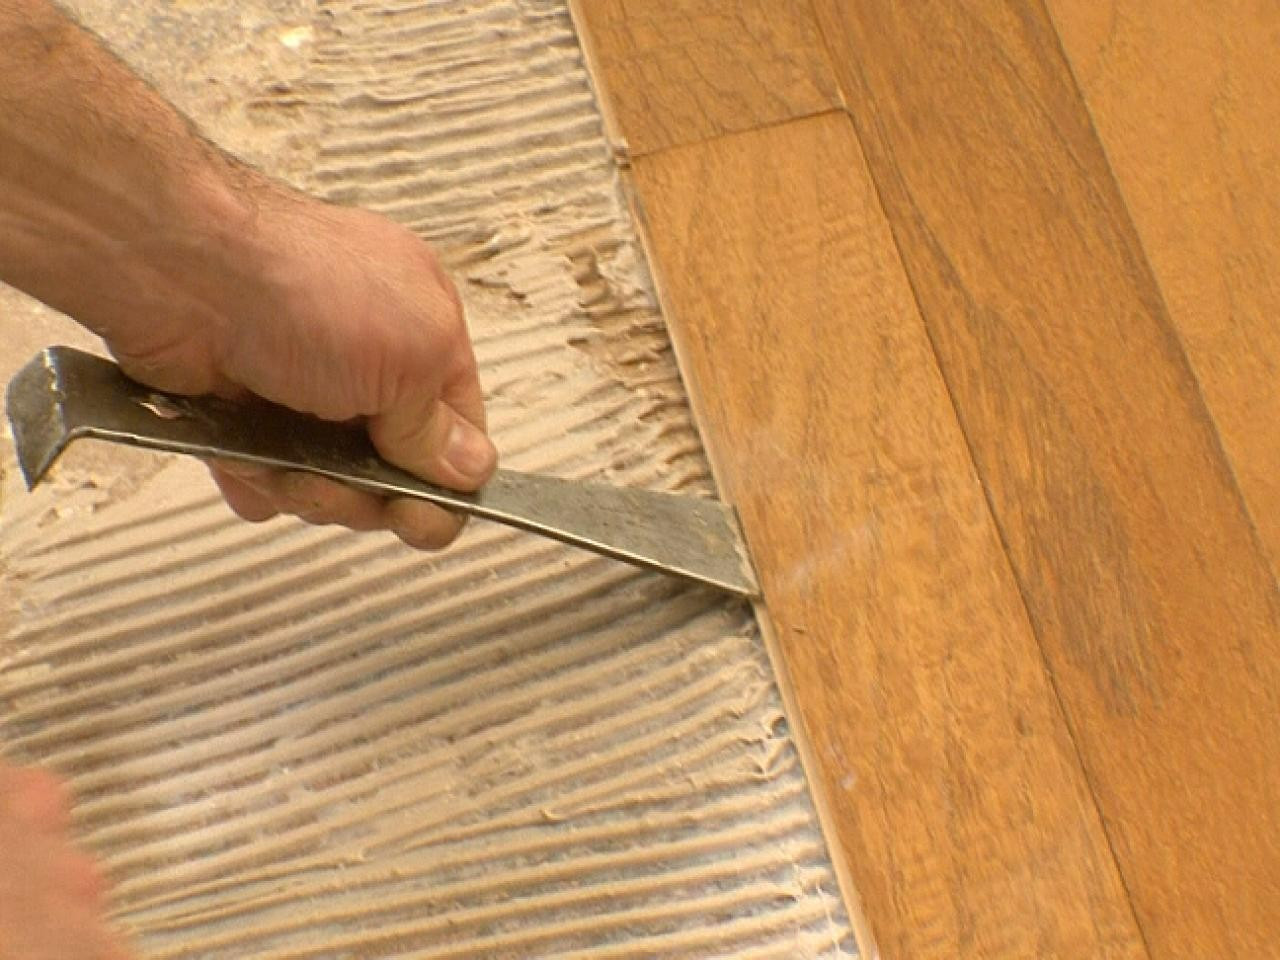 jr hardwood floors of 17 new cost of hardwood floor installation pics dizpos com with regard to cost of hardwood floor installation new average cost engineered wood flooring per square foot flooring stock